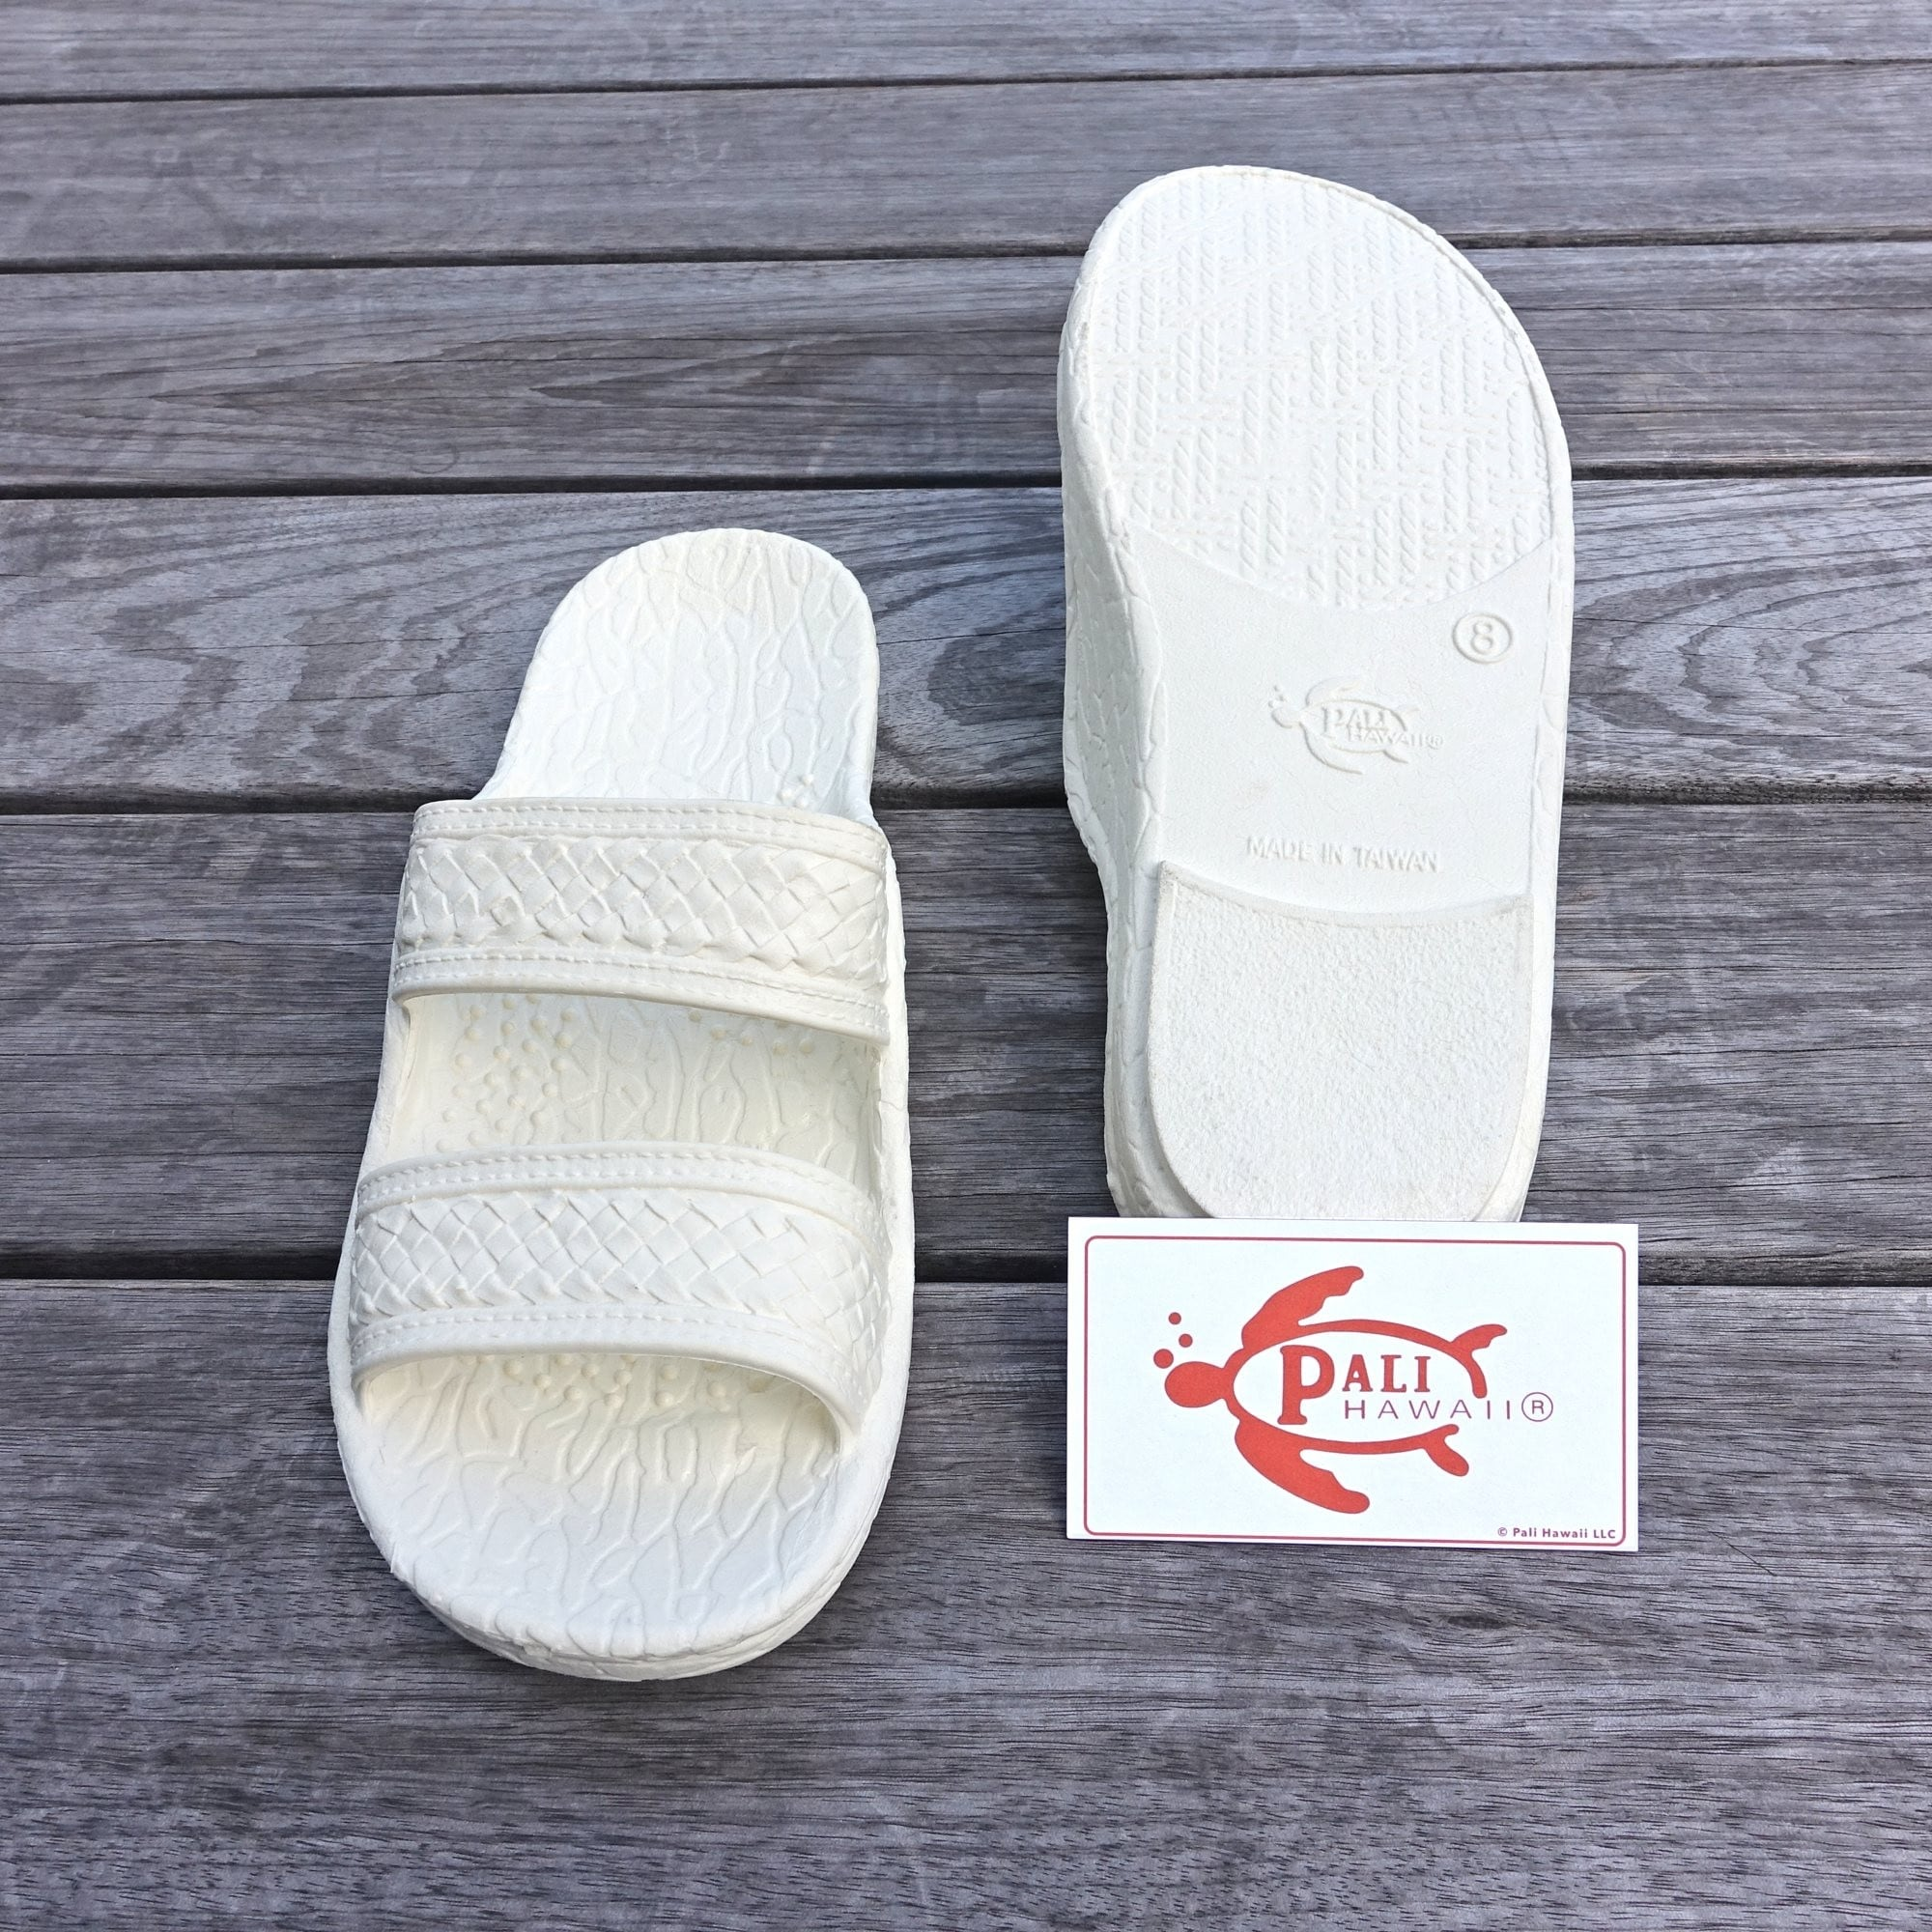 557b134a46bc76 Shop Pali Hawaii Jandals WHITE with Certificate of Authenticity - Free  Shipping On Orders Over  45 - Overstock - 16025336